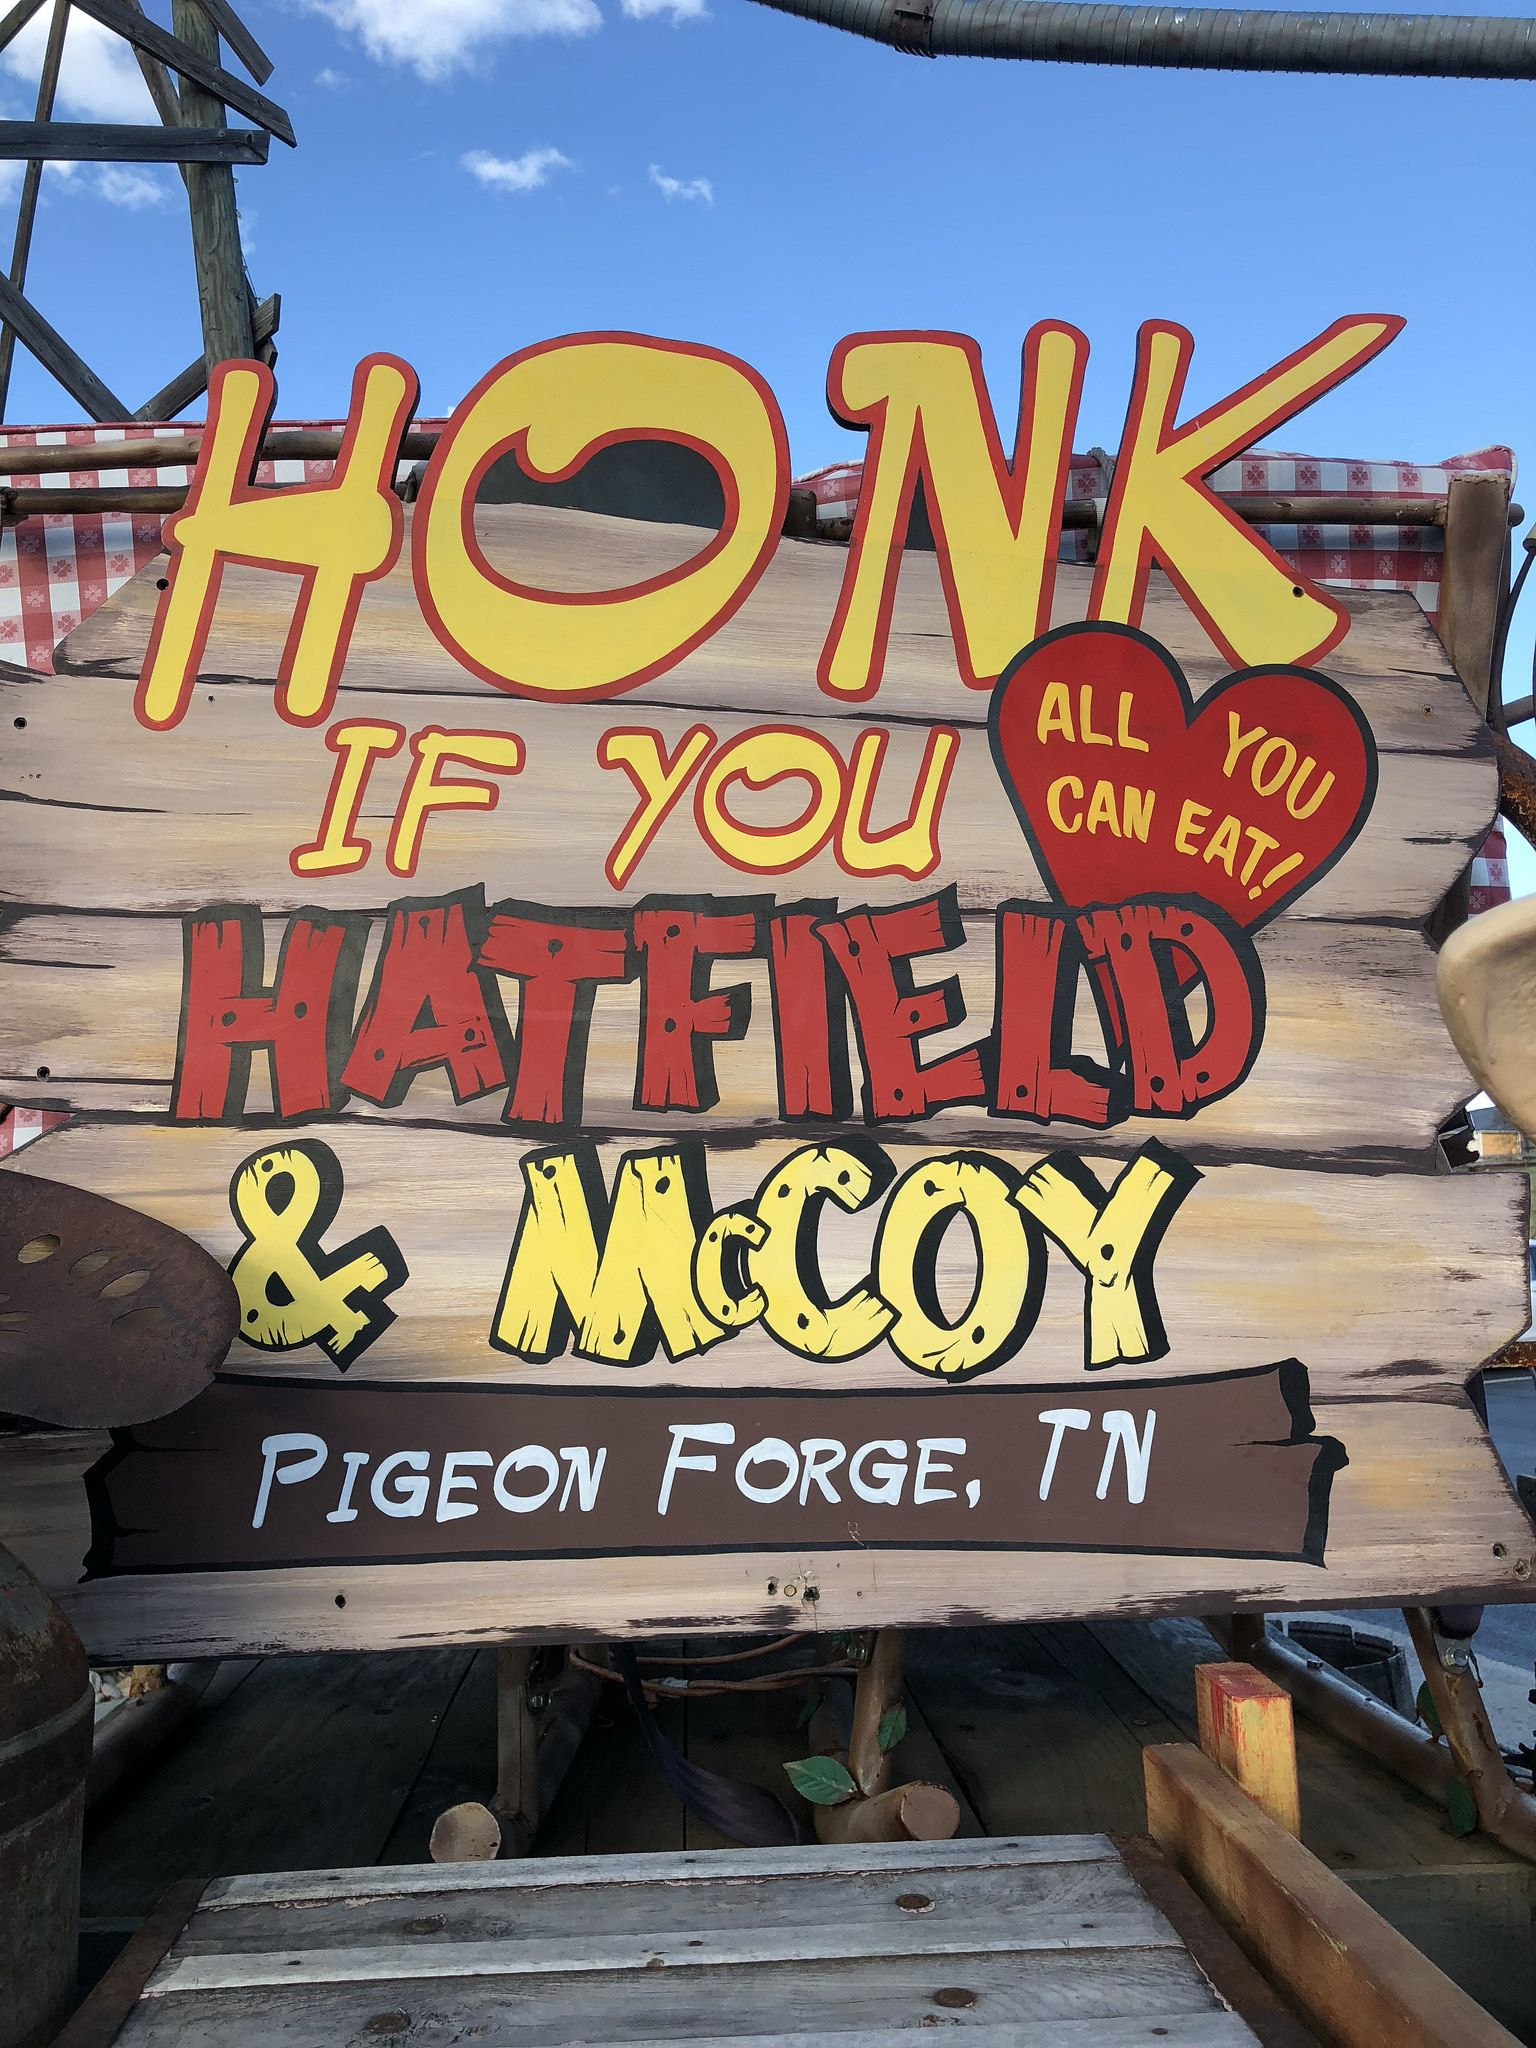 Honk if you hatfields and mccoys meal delivery service